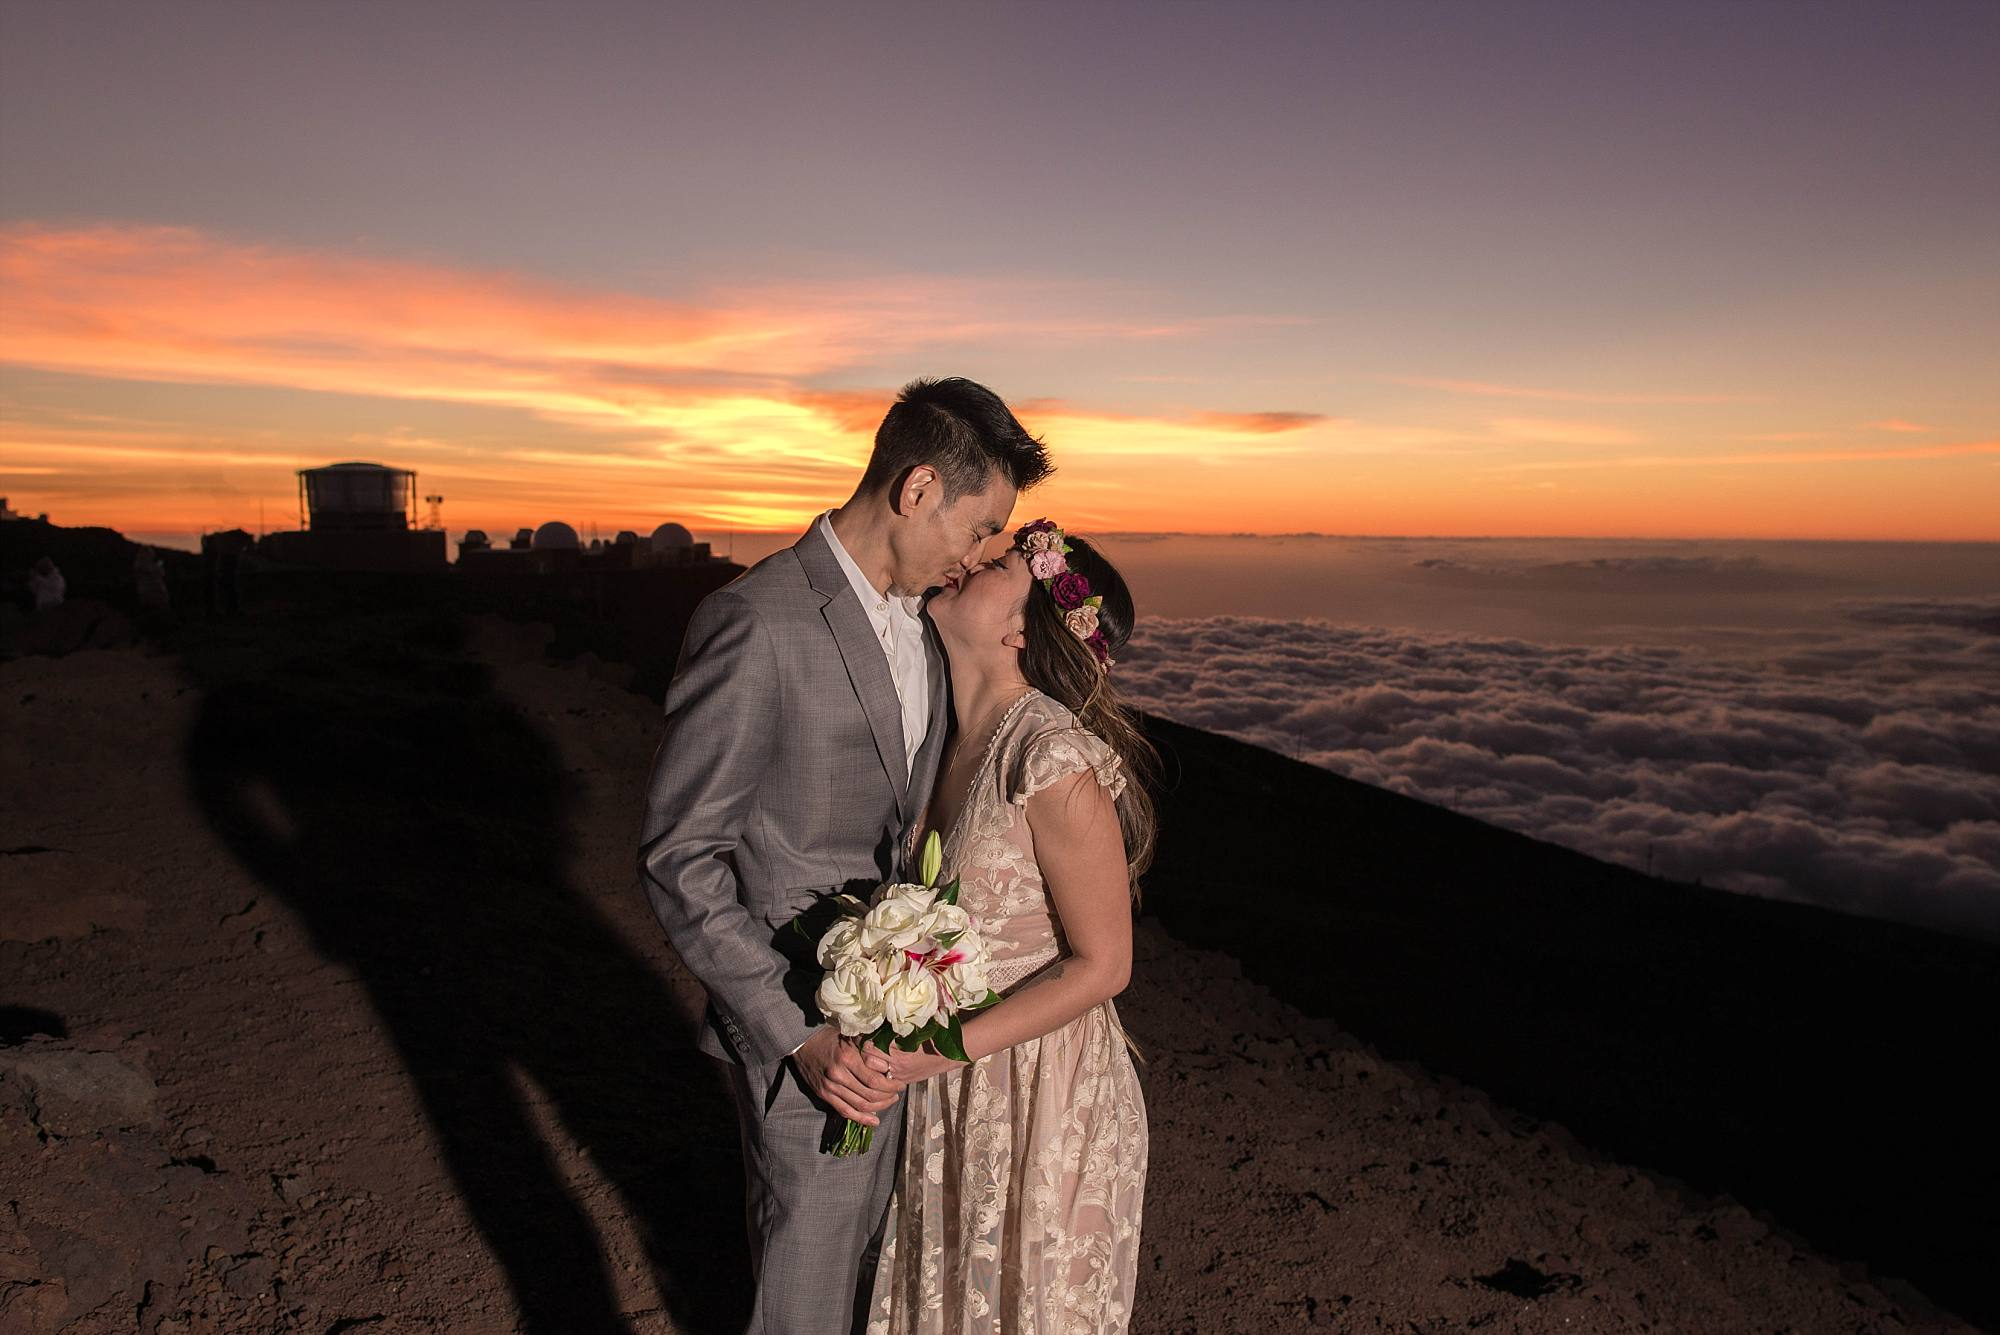 husband and wife kissing at sunset above clouds